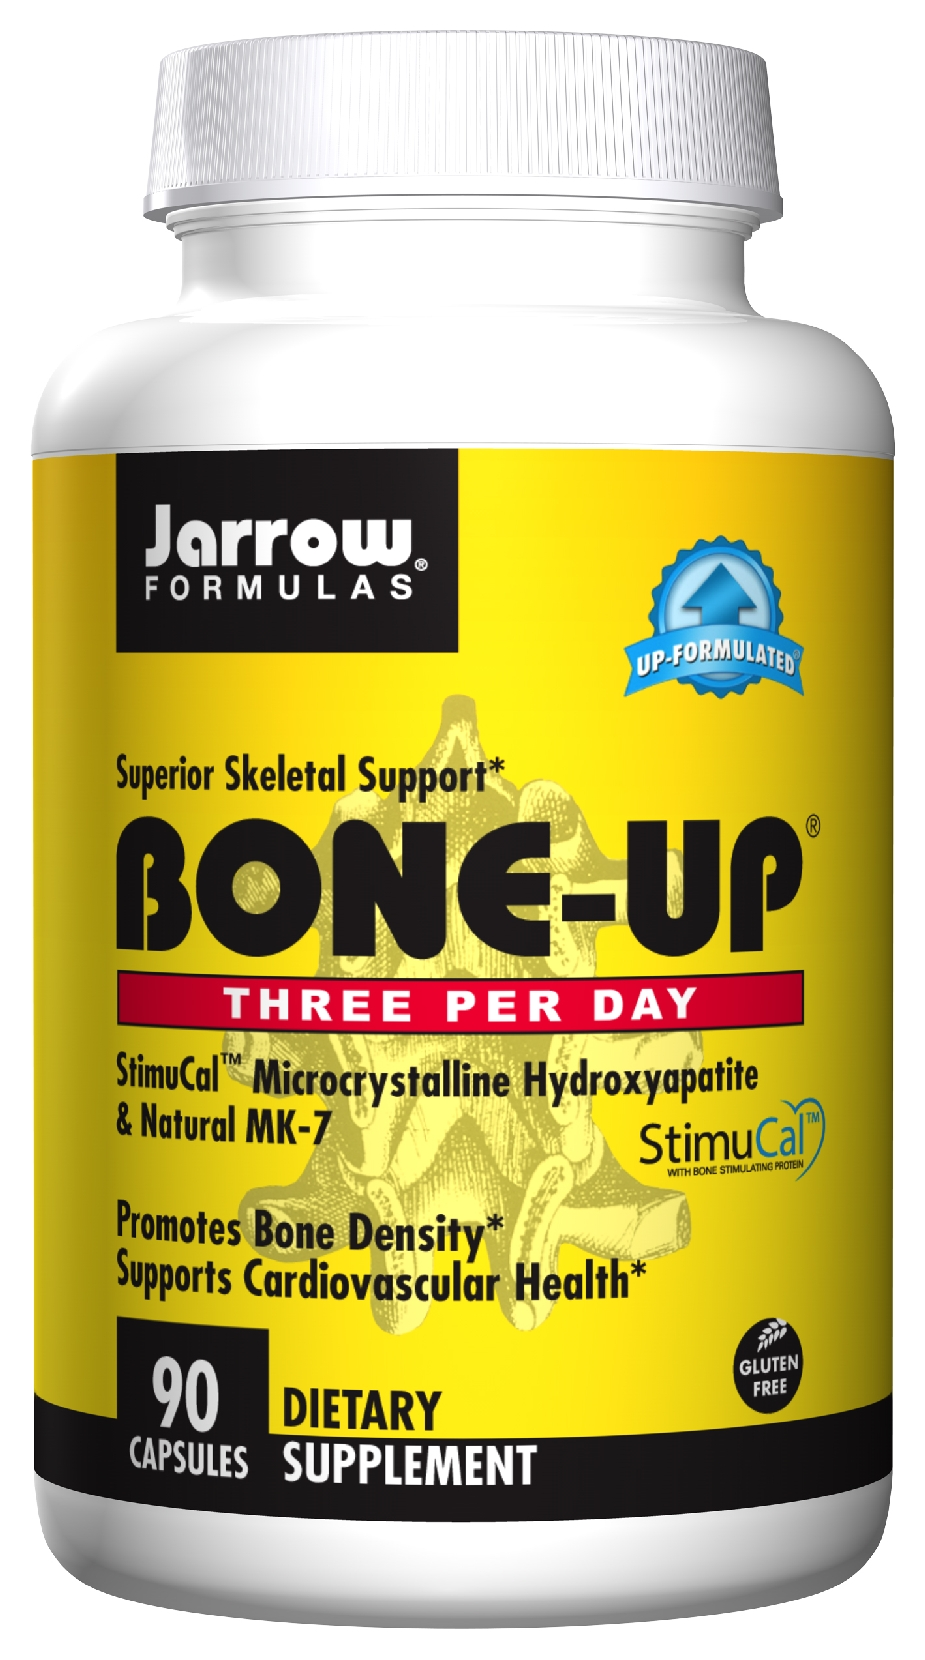 Bone-Up Three Per Day 90 caps by Jarrow Formulas